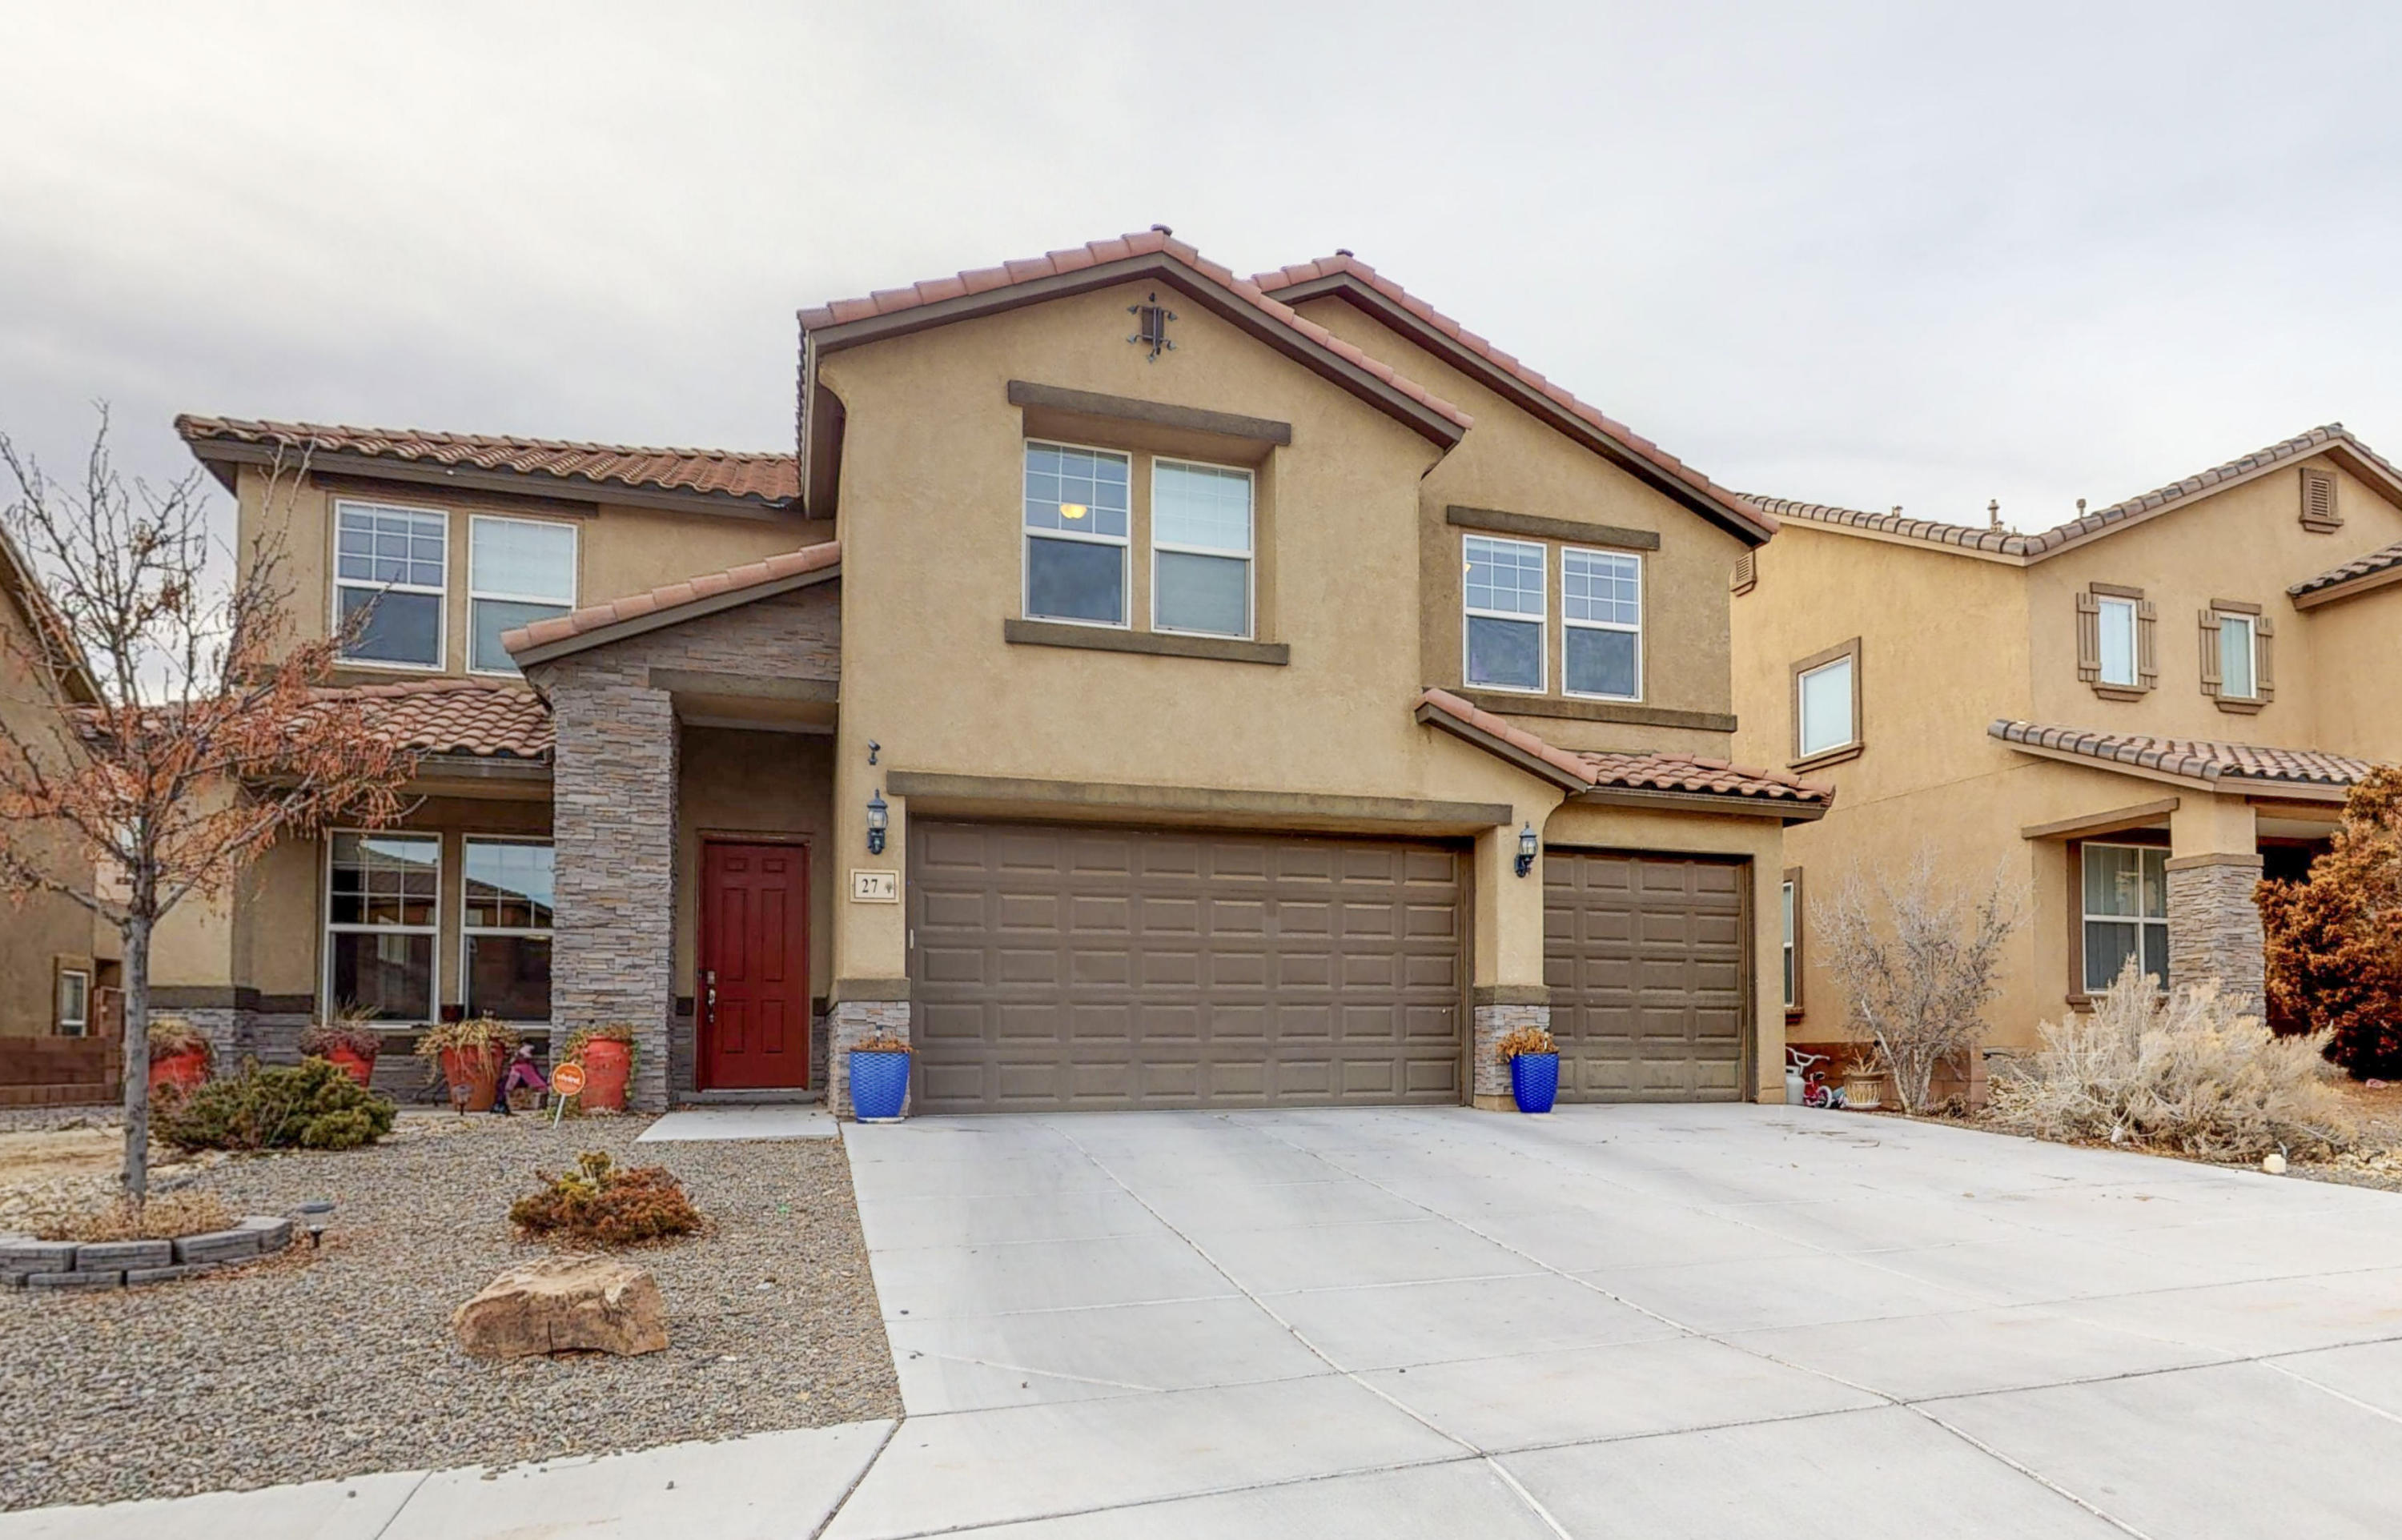 Welcome to the highly sought after Loma Colorado neighborhood.  This beautiful, 3800 sq ft, well maintained, 2 story home  has 4 BR, 2 1/2 bathrooms and a spacious LOFT and OFFICE.  MBR with large garden tub. Kitchen with VERY LARGE island.  Don't forget the convenience of the 3 car garage.  The interior has tile and laminate flooring, stainless steel appliances and granite counter tops.  Backyard beautifully landscaped.  The owners took pride in maintaining this beautiful home.  Close to parks, walking trails, public library and aquatic center.  Must come and see to appreciate.  Call to schedule your showing soon.